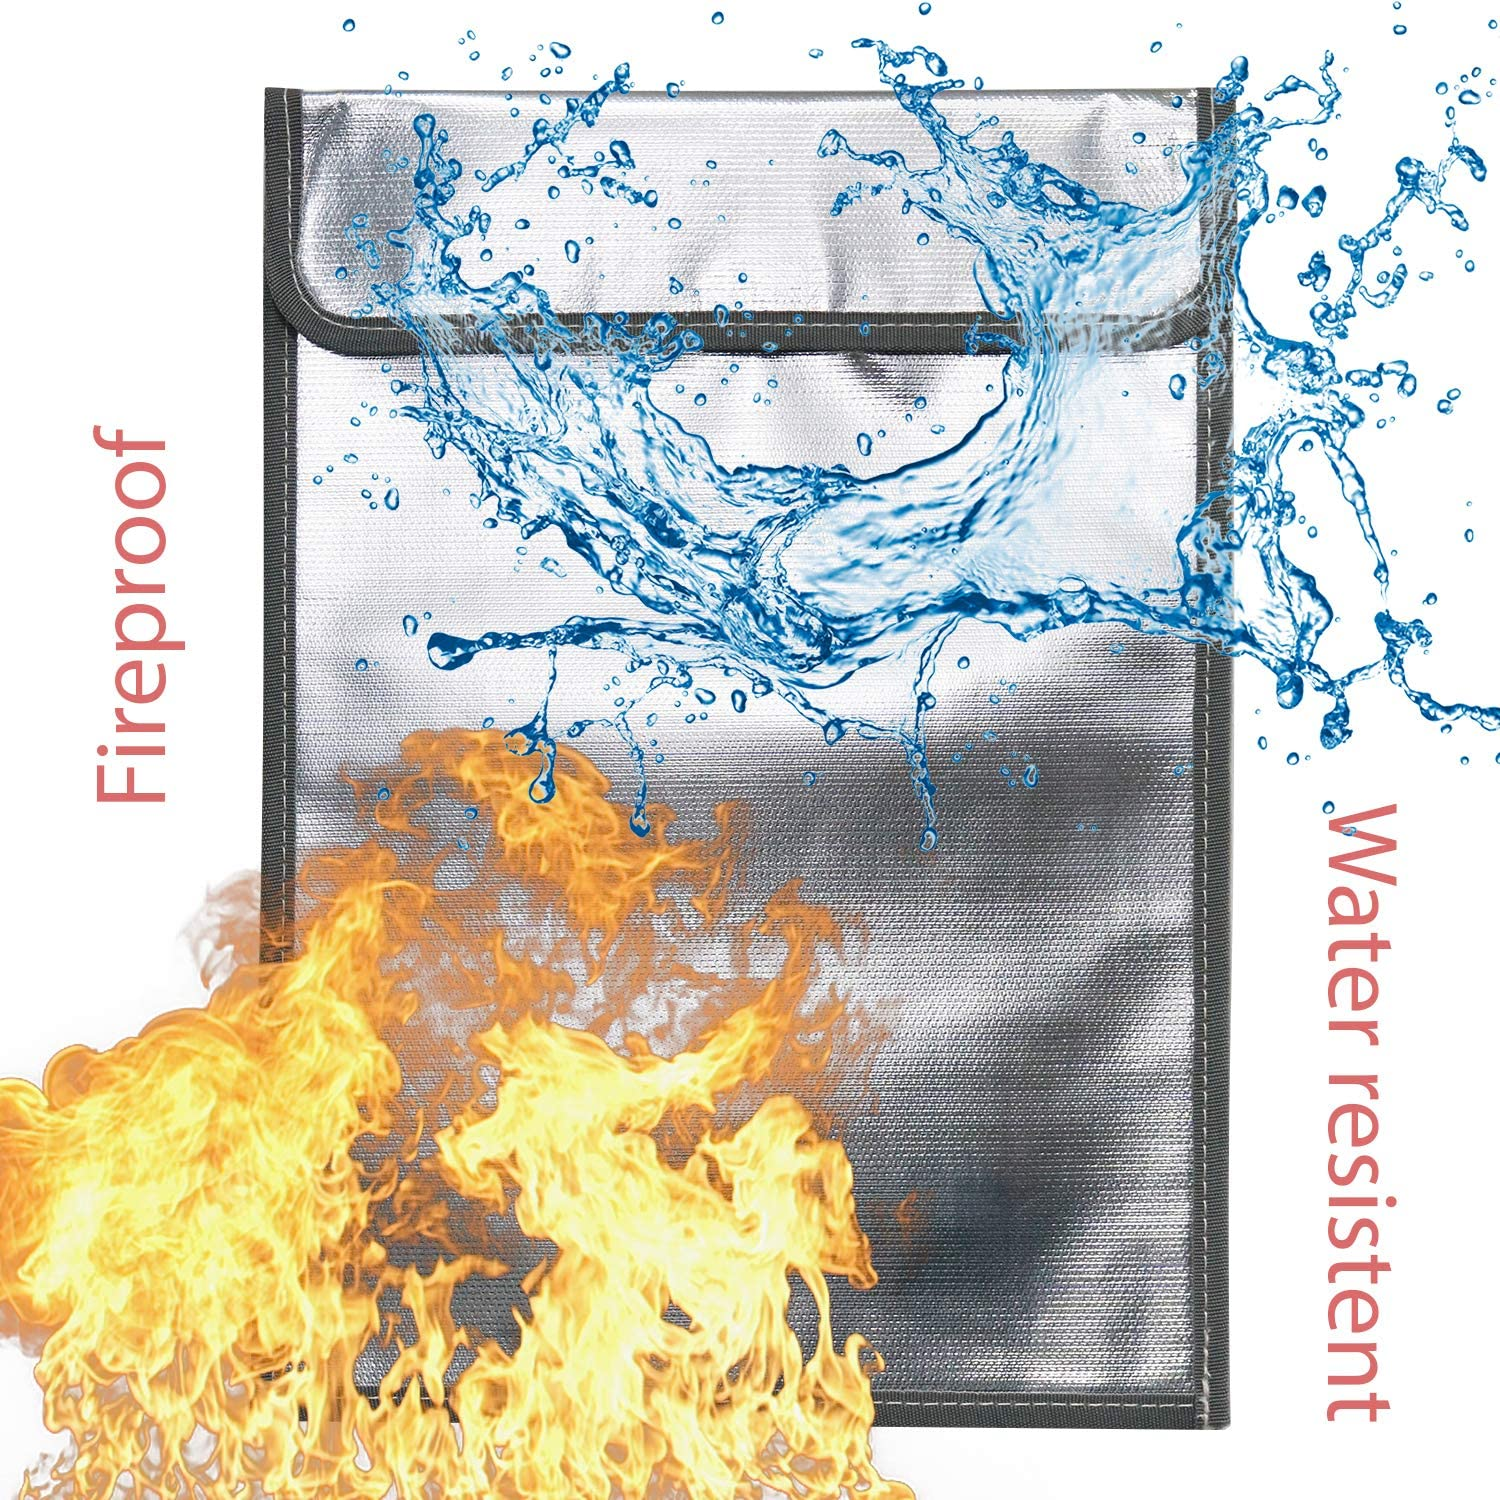 Dual-Layer Aluminum Coated Fiberglass Bag Keeps Documents and Money Safe Fireproof Envelope for Documents Large 15 X 11 Non-Itchy Fire and Waterproof Storage for Lipo Batteries